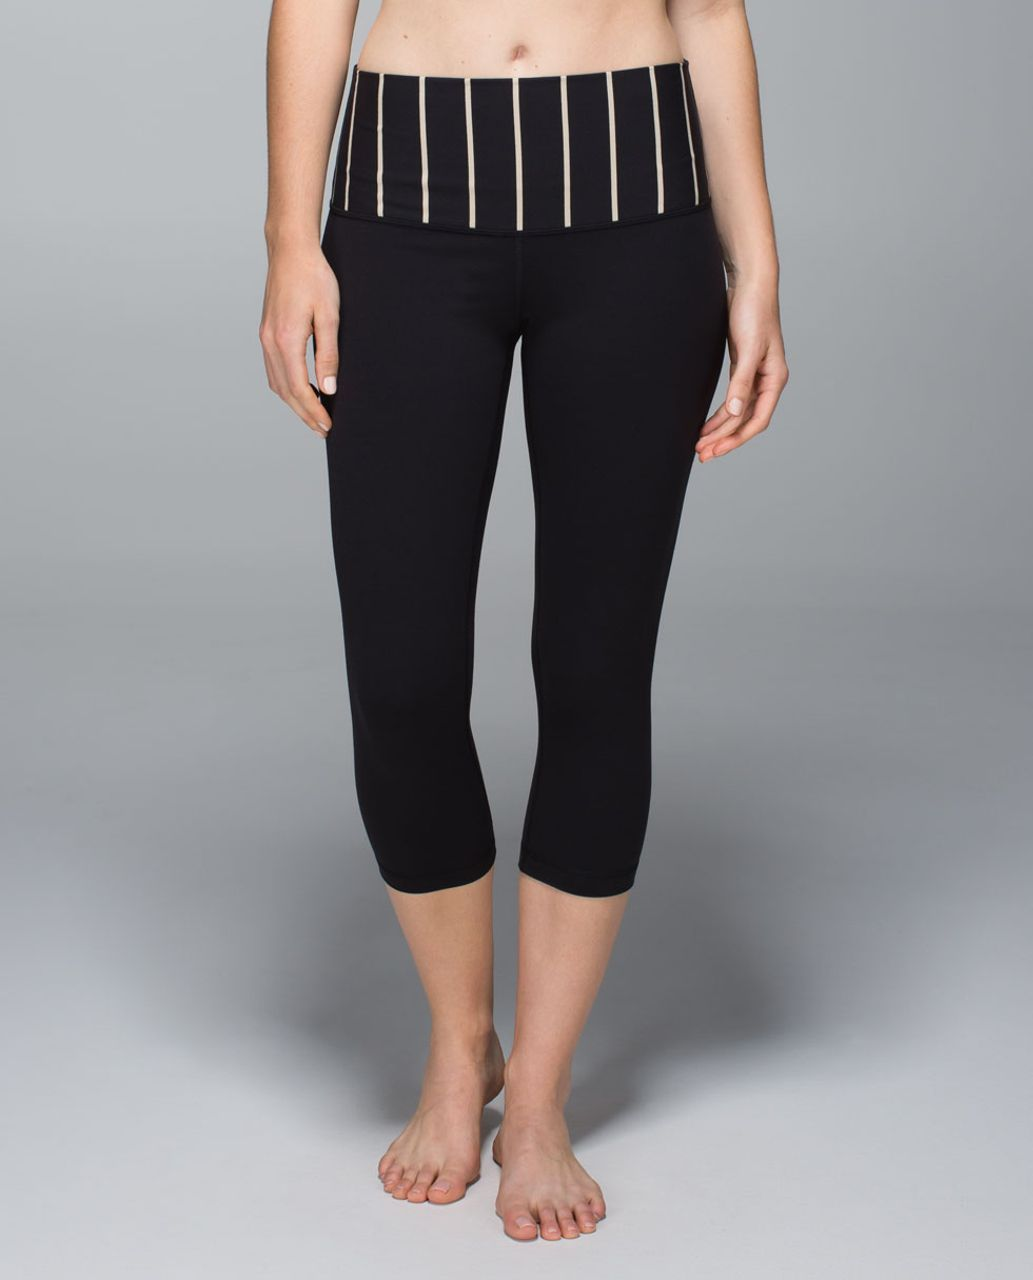 Lululemon Wunder Under Crop *Full-On Luon (Roll Down) - Black / Cayman Stripe Black Mojave Tan